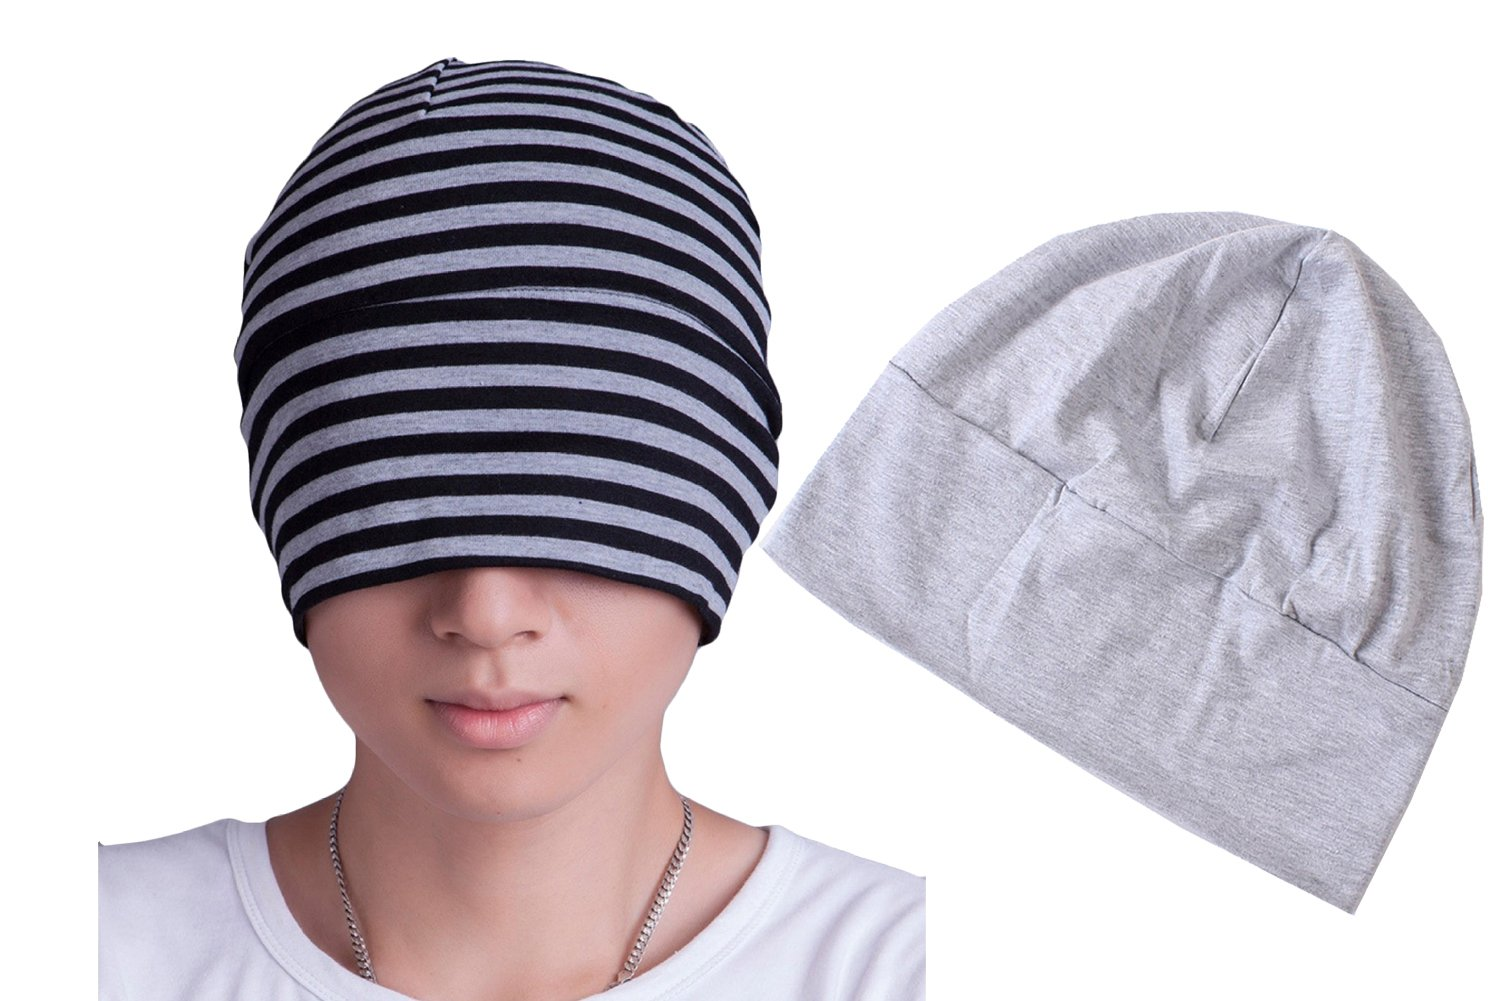 BW Women Men Cotton Sleeping Cap With Eye Mask Chemo Beanie Hat 2 Pack A